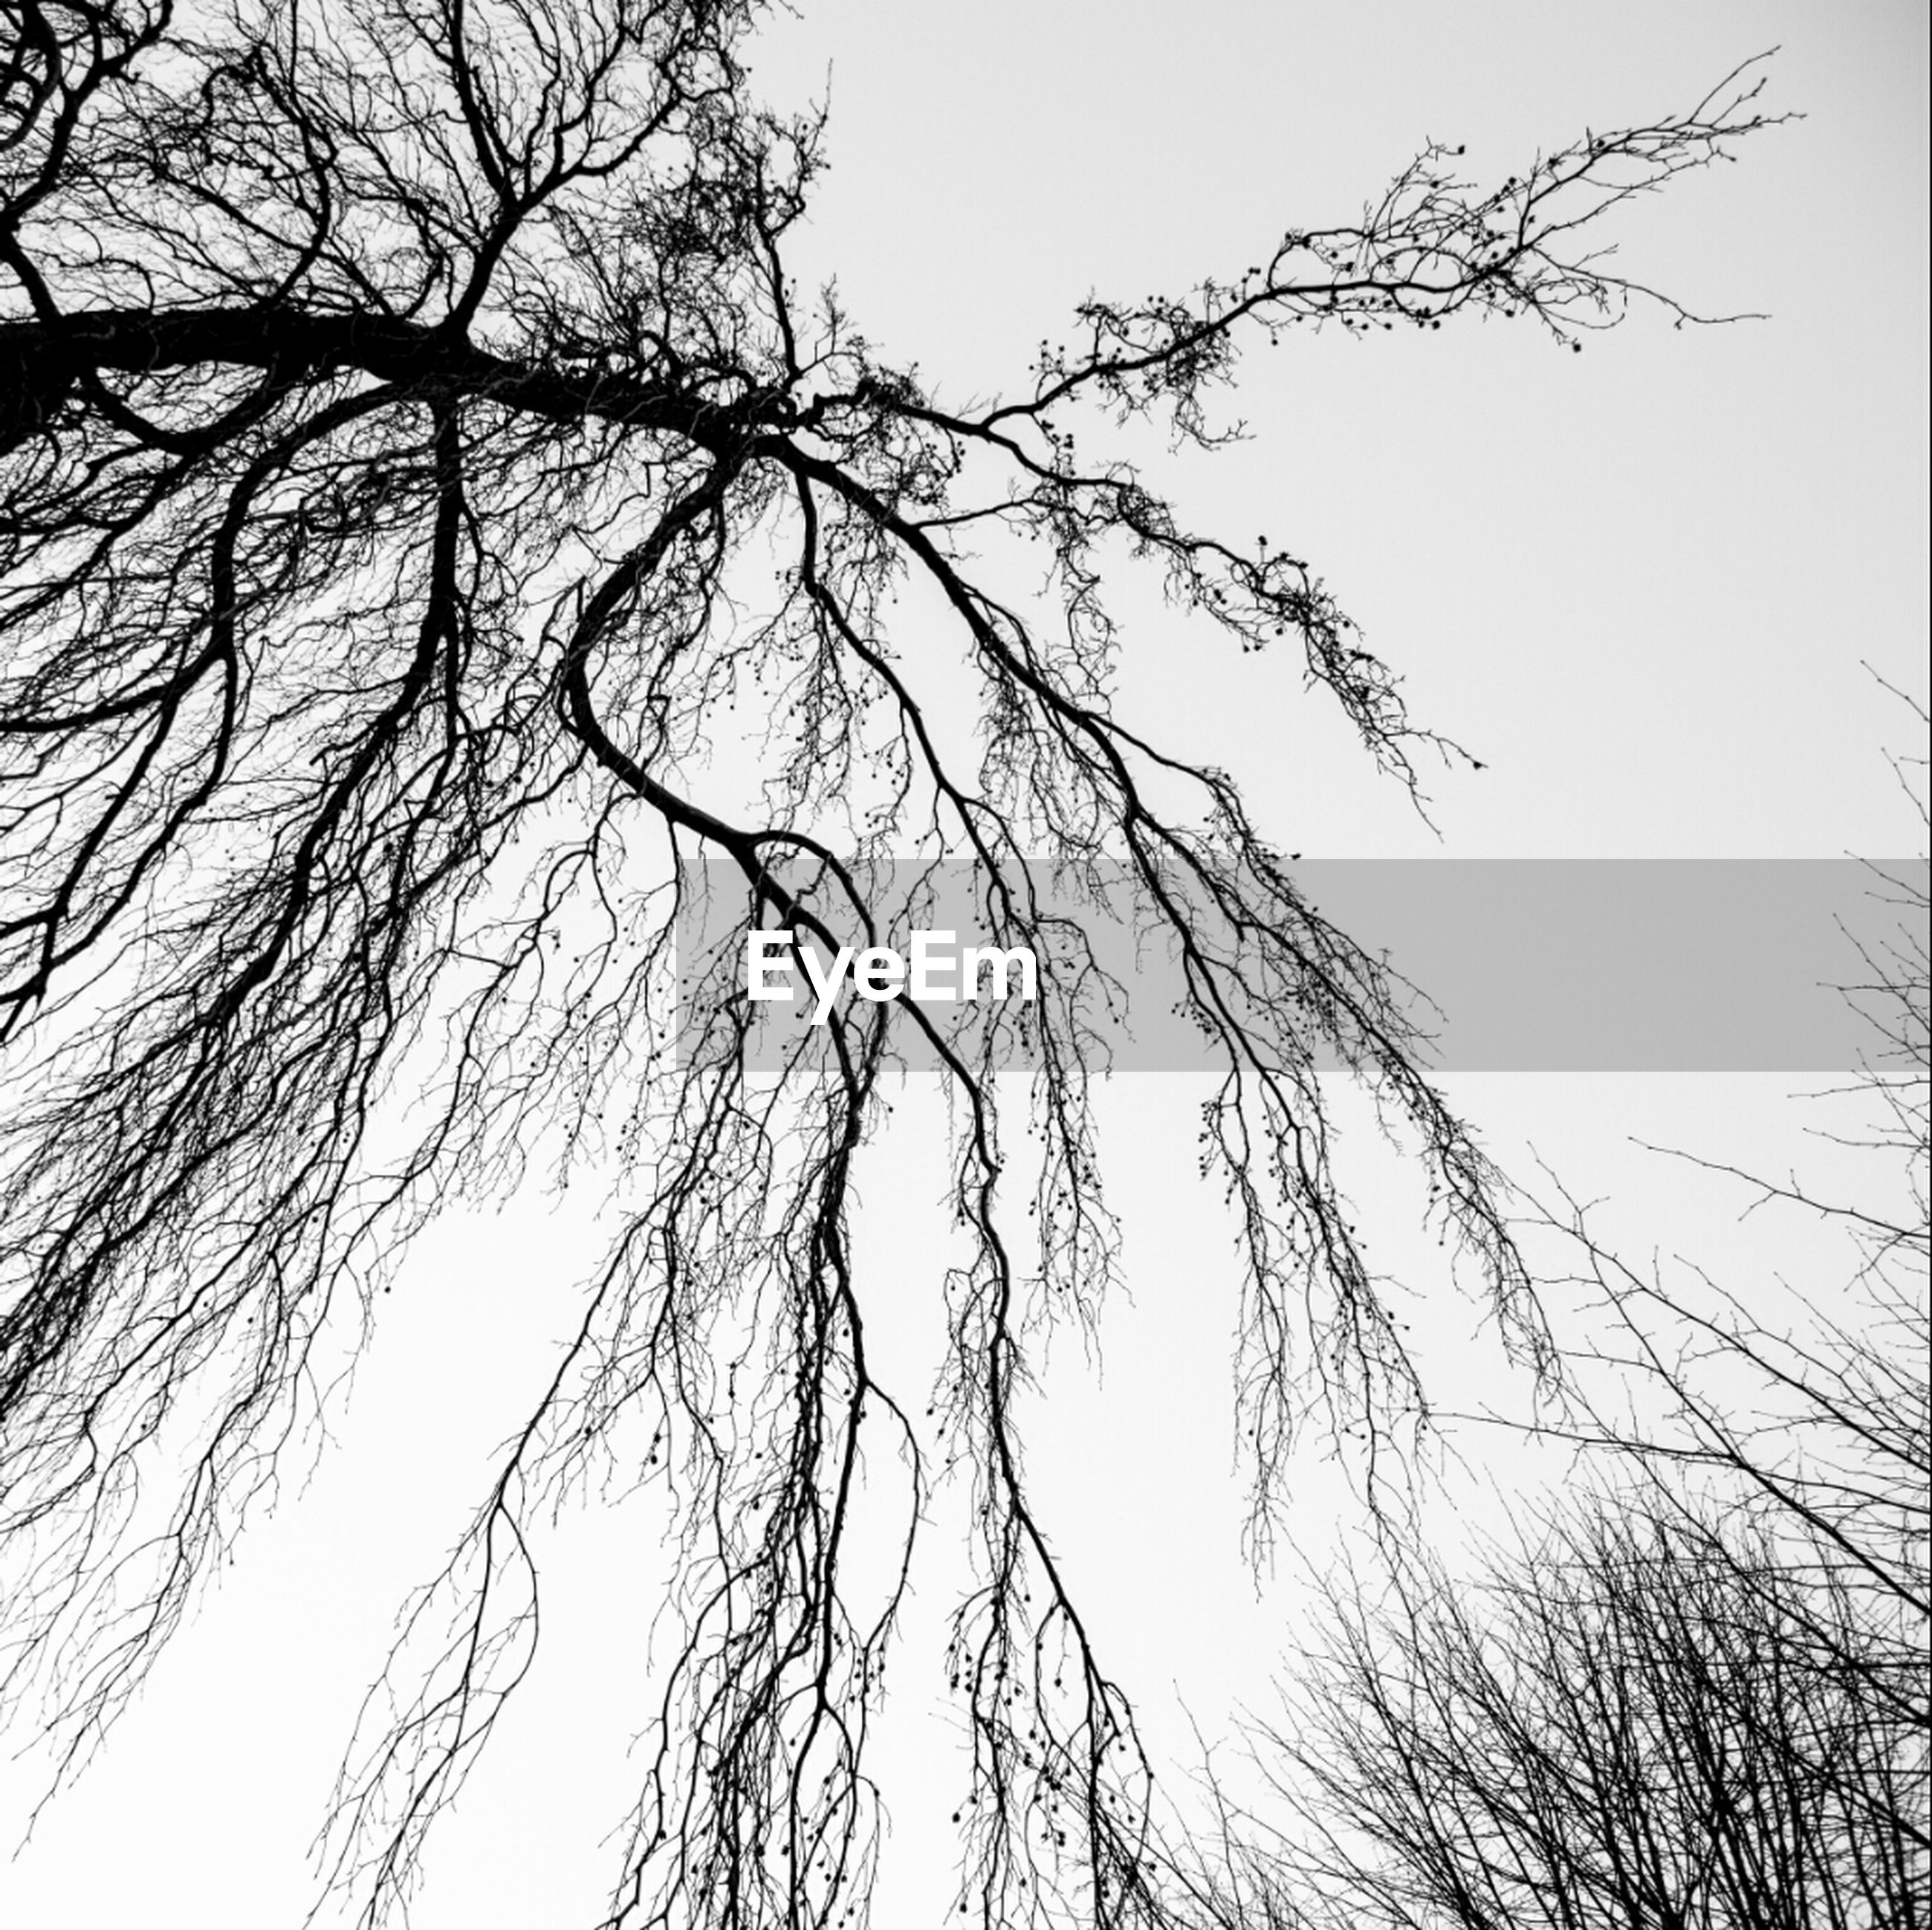 High section of bare trees against clear sky